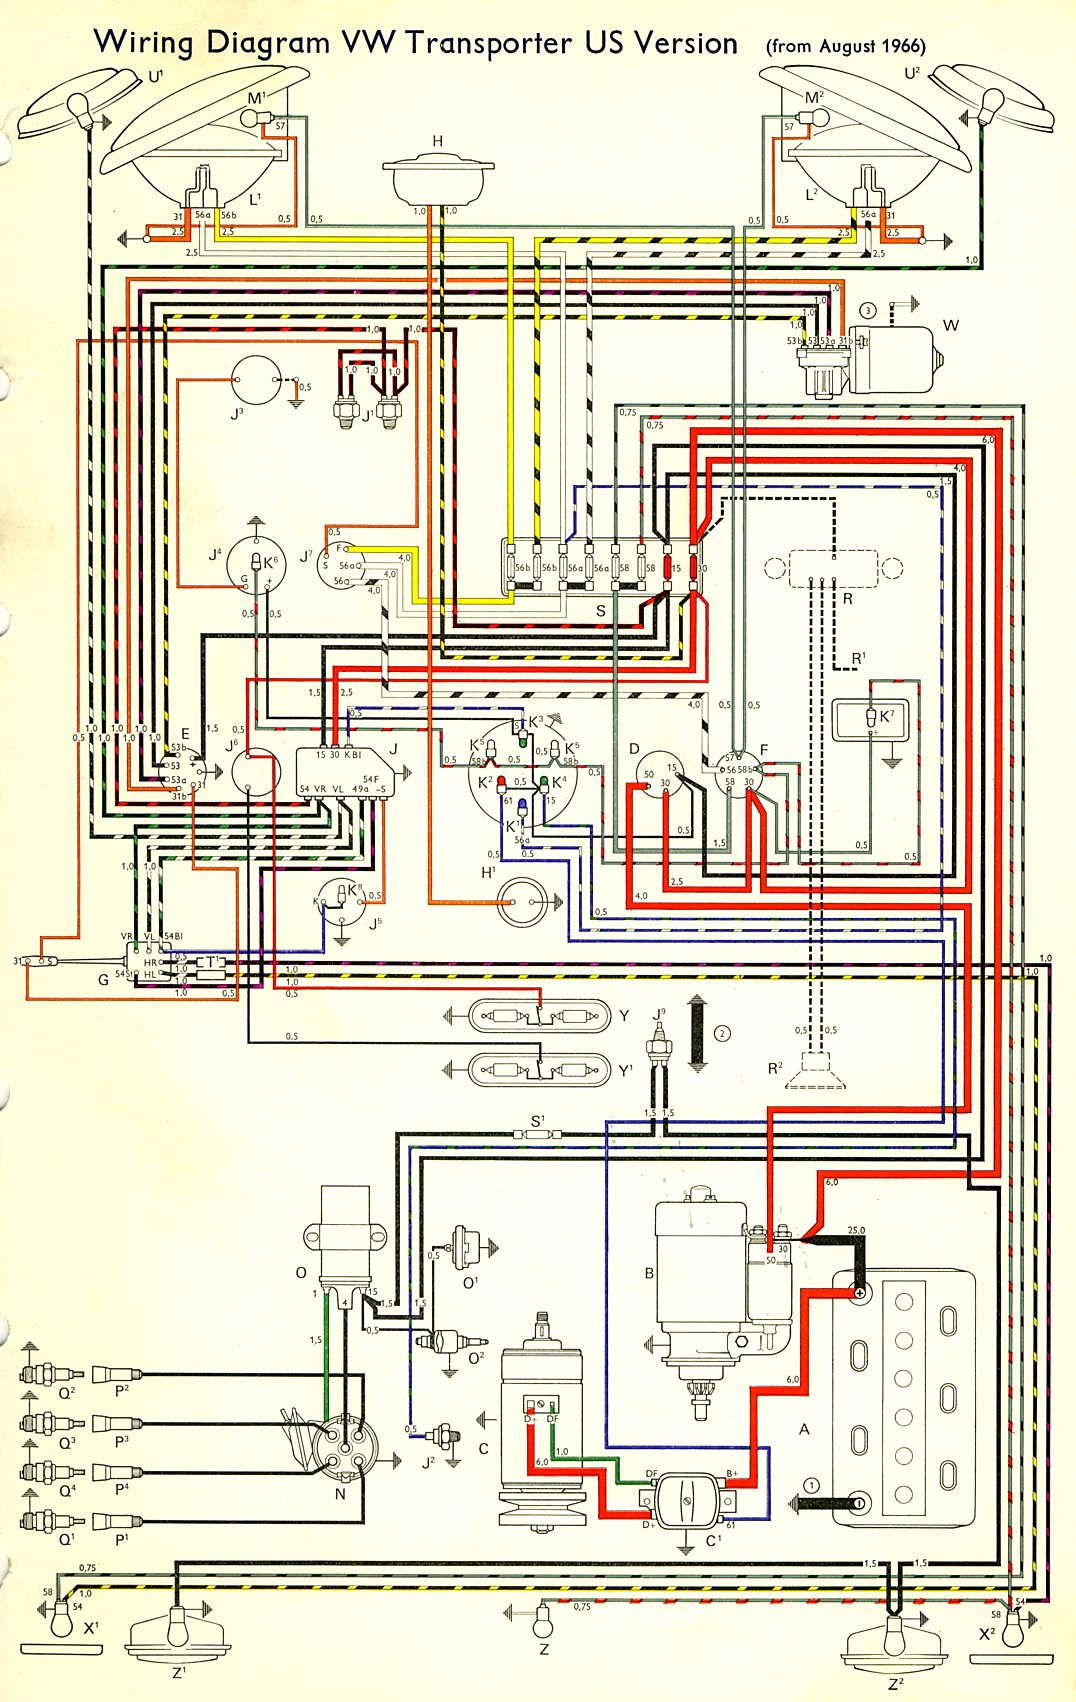 [ANLQ_8698]  TheSamba.com :: Type 2 Wiring Diagrams | International Bus Wiring Diagrams |  | The Samba